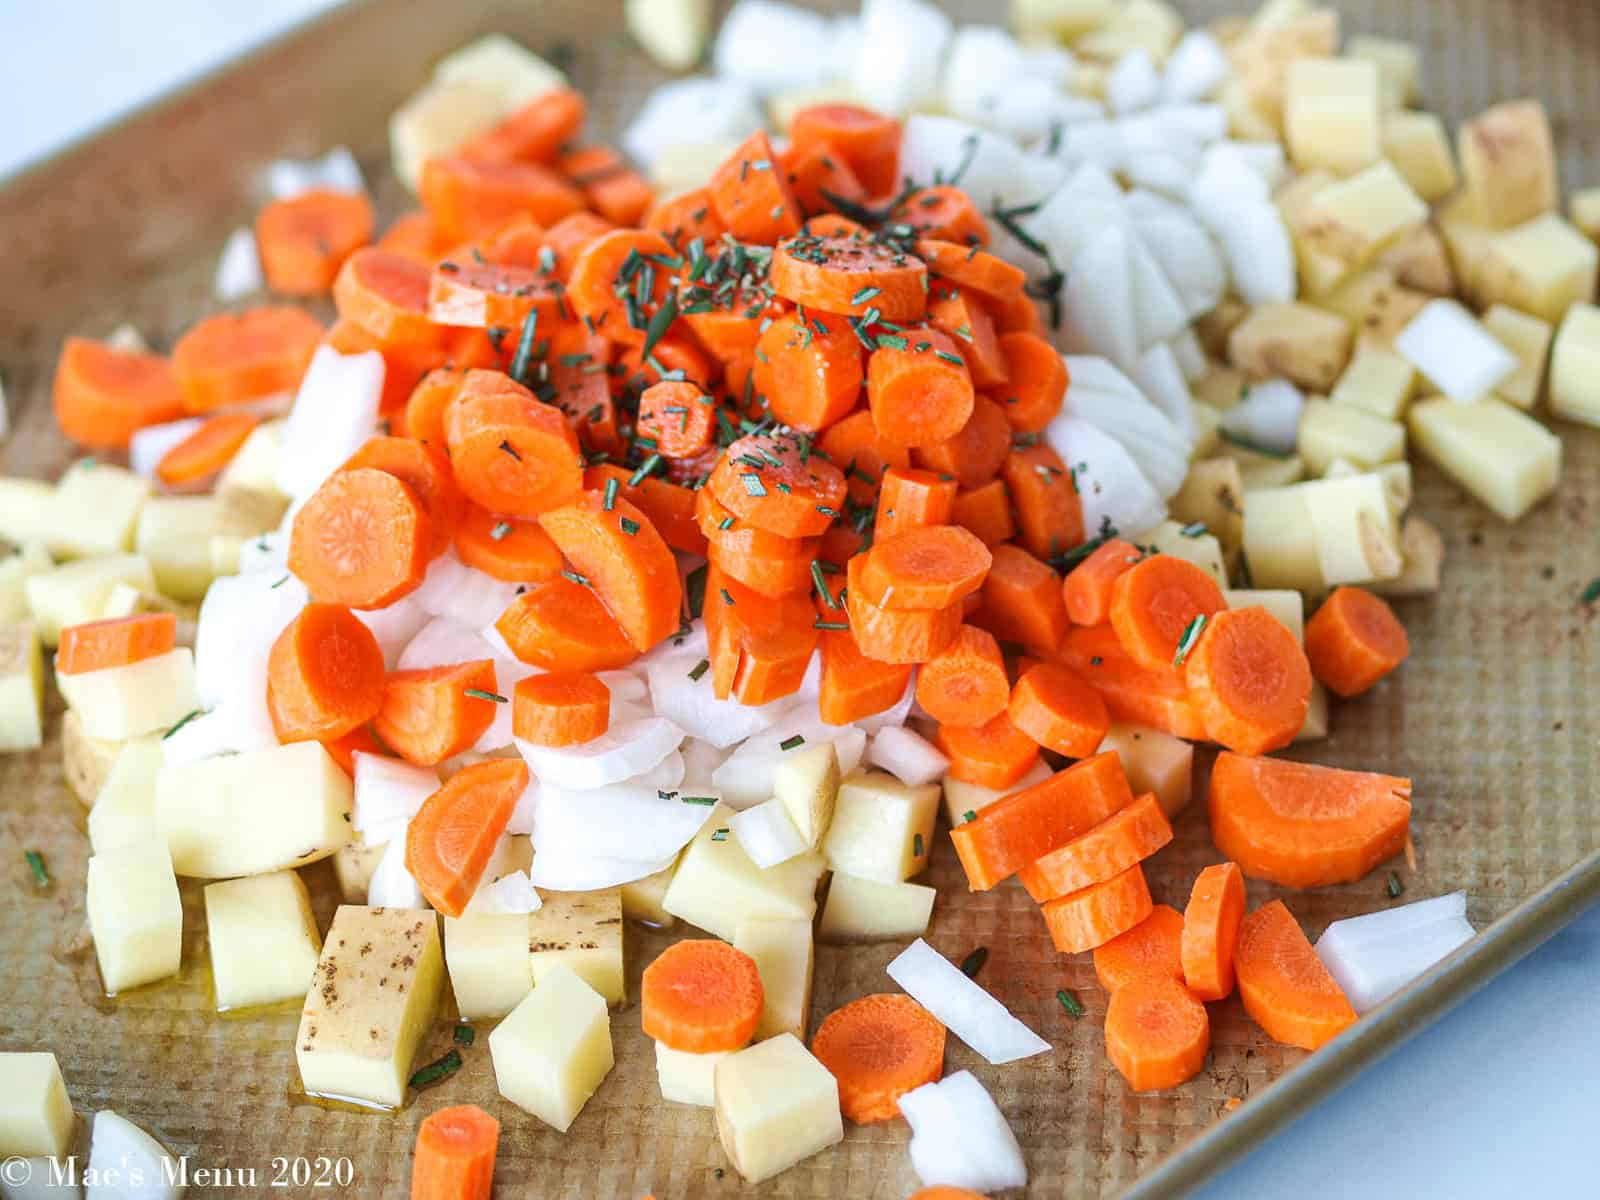 Potatoes, onions, and carrots with dried spices on a baking sheet